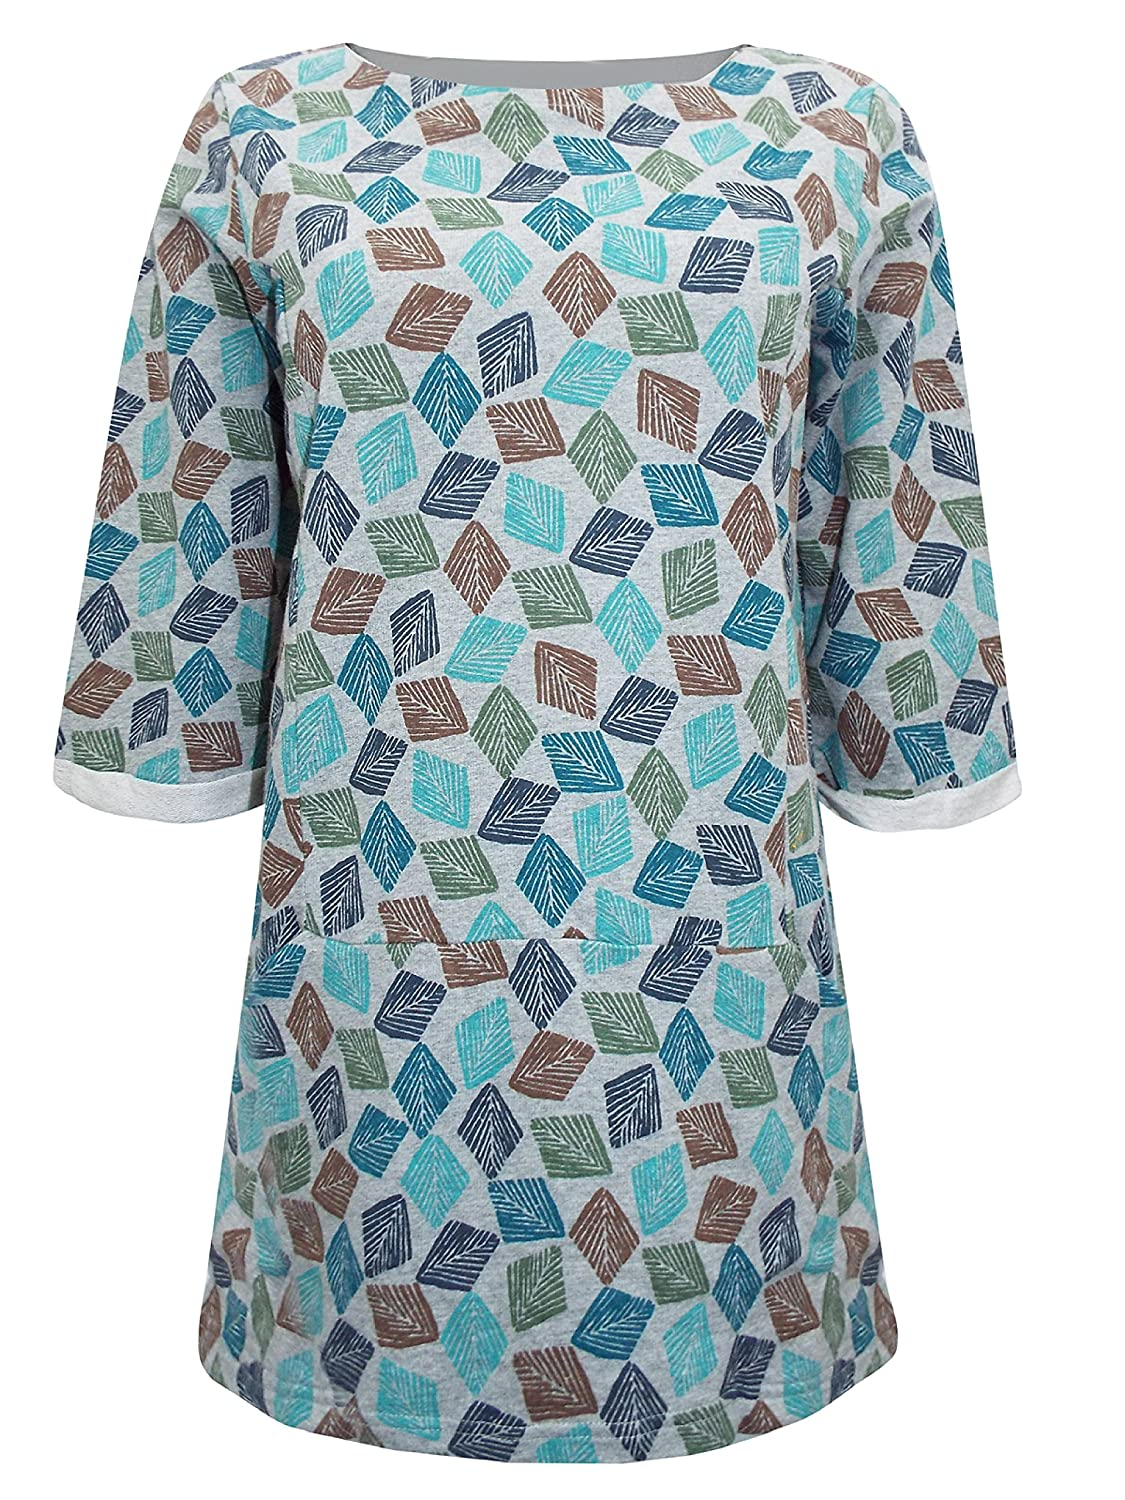 46393ae6ec5 Seasalt Trewoon Tunic Top in Diamond Stamp Cobble Organic Cotton (14):  Amazon.co.uk: Clothing